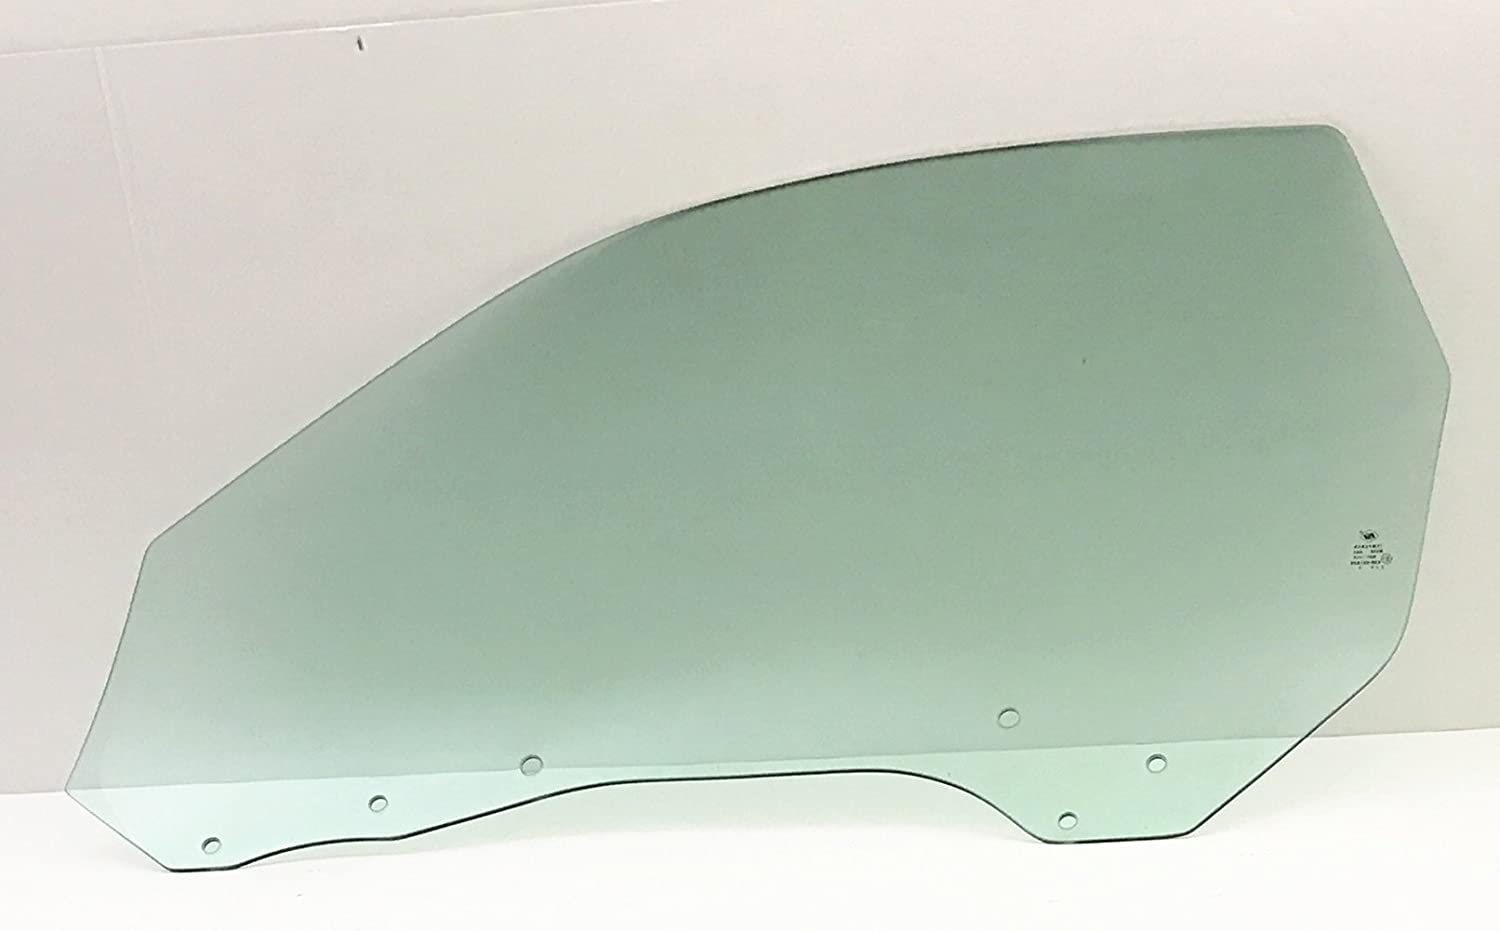 NAGD Compatible with Pontiac Firebird Coupe//Convertible Driver Side Left Door Window Glass